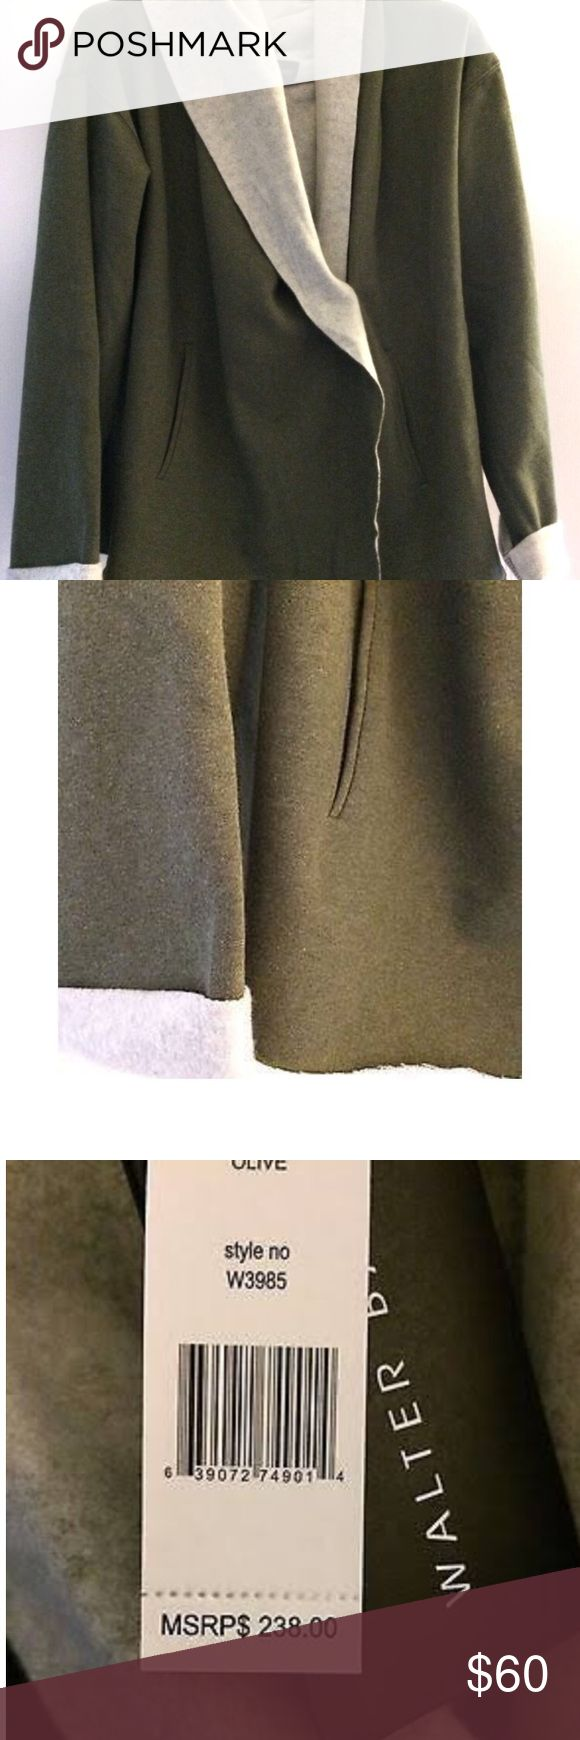 Walter Baker Women's Olive Hoodie Coat This is a NEW with TAGS WALTER BAKER Women's Olive Hoodie Coat. Size XL. Front button closure. 2 front pockets. Imported. Color Olive. Made of 80% cotton, 20% Polyester. Style# W3985. Hand wash cold. Walter Baker Jackets & Coats